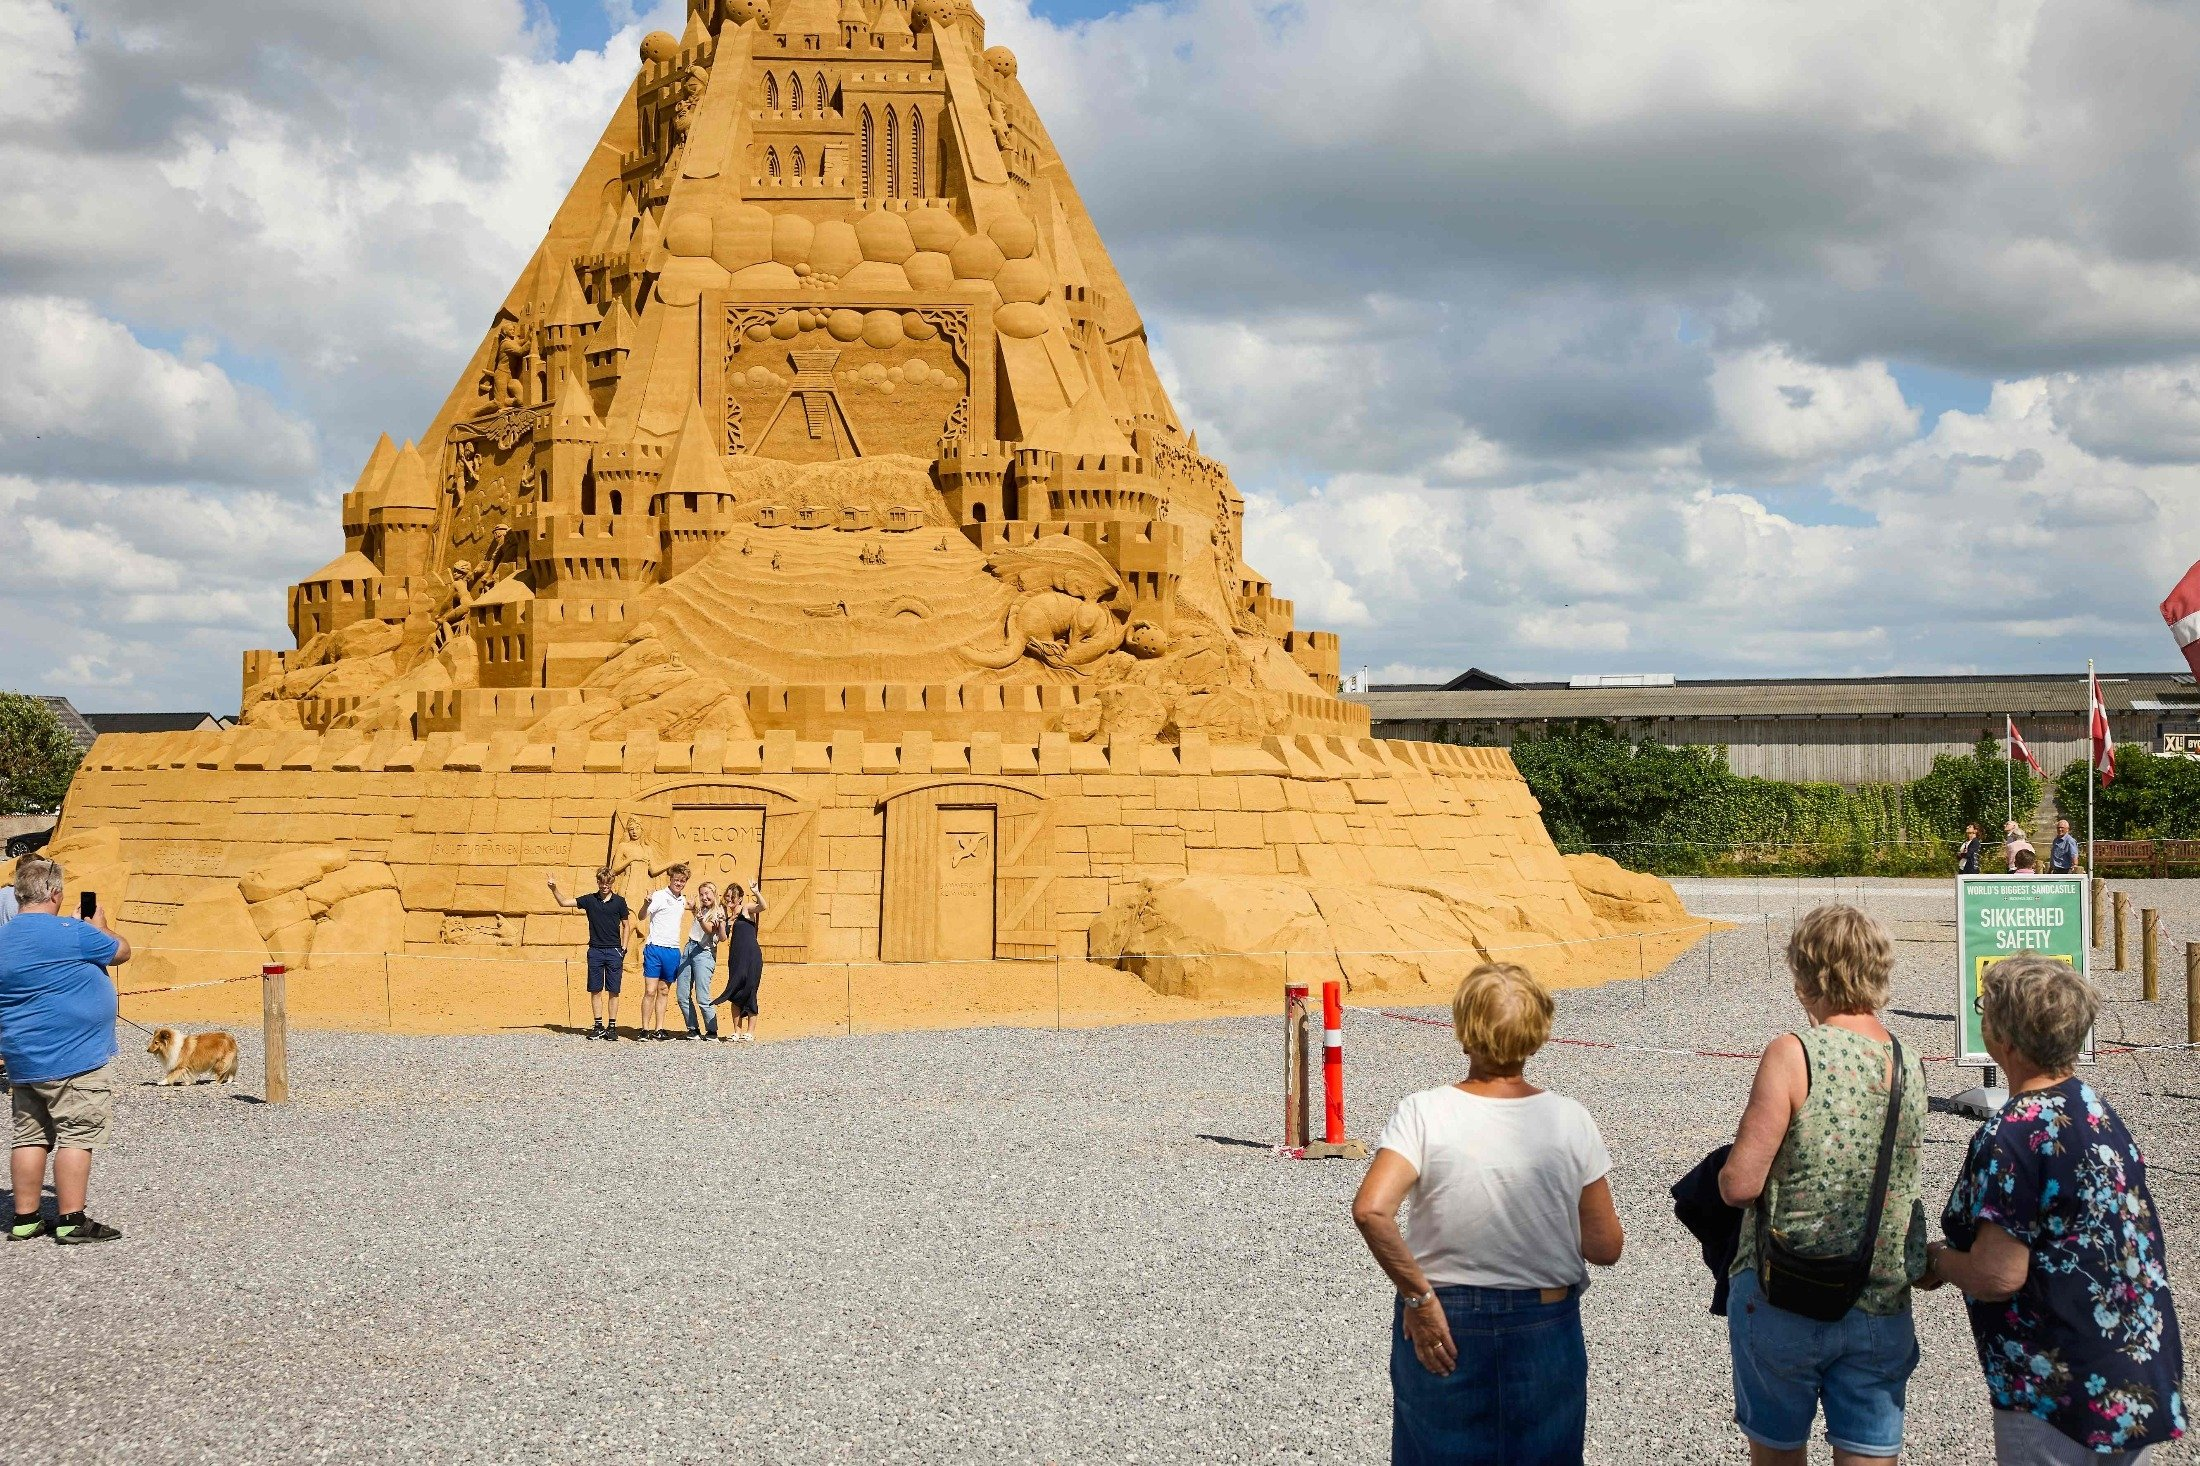 People pose for photos by the world's tallest sand sculpture, under construction in Blokhus, Denmark, July 7, 2021. (AFP Photo)